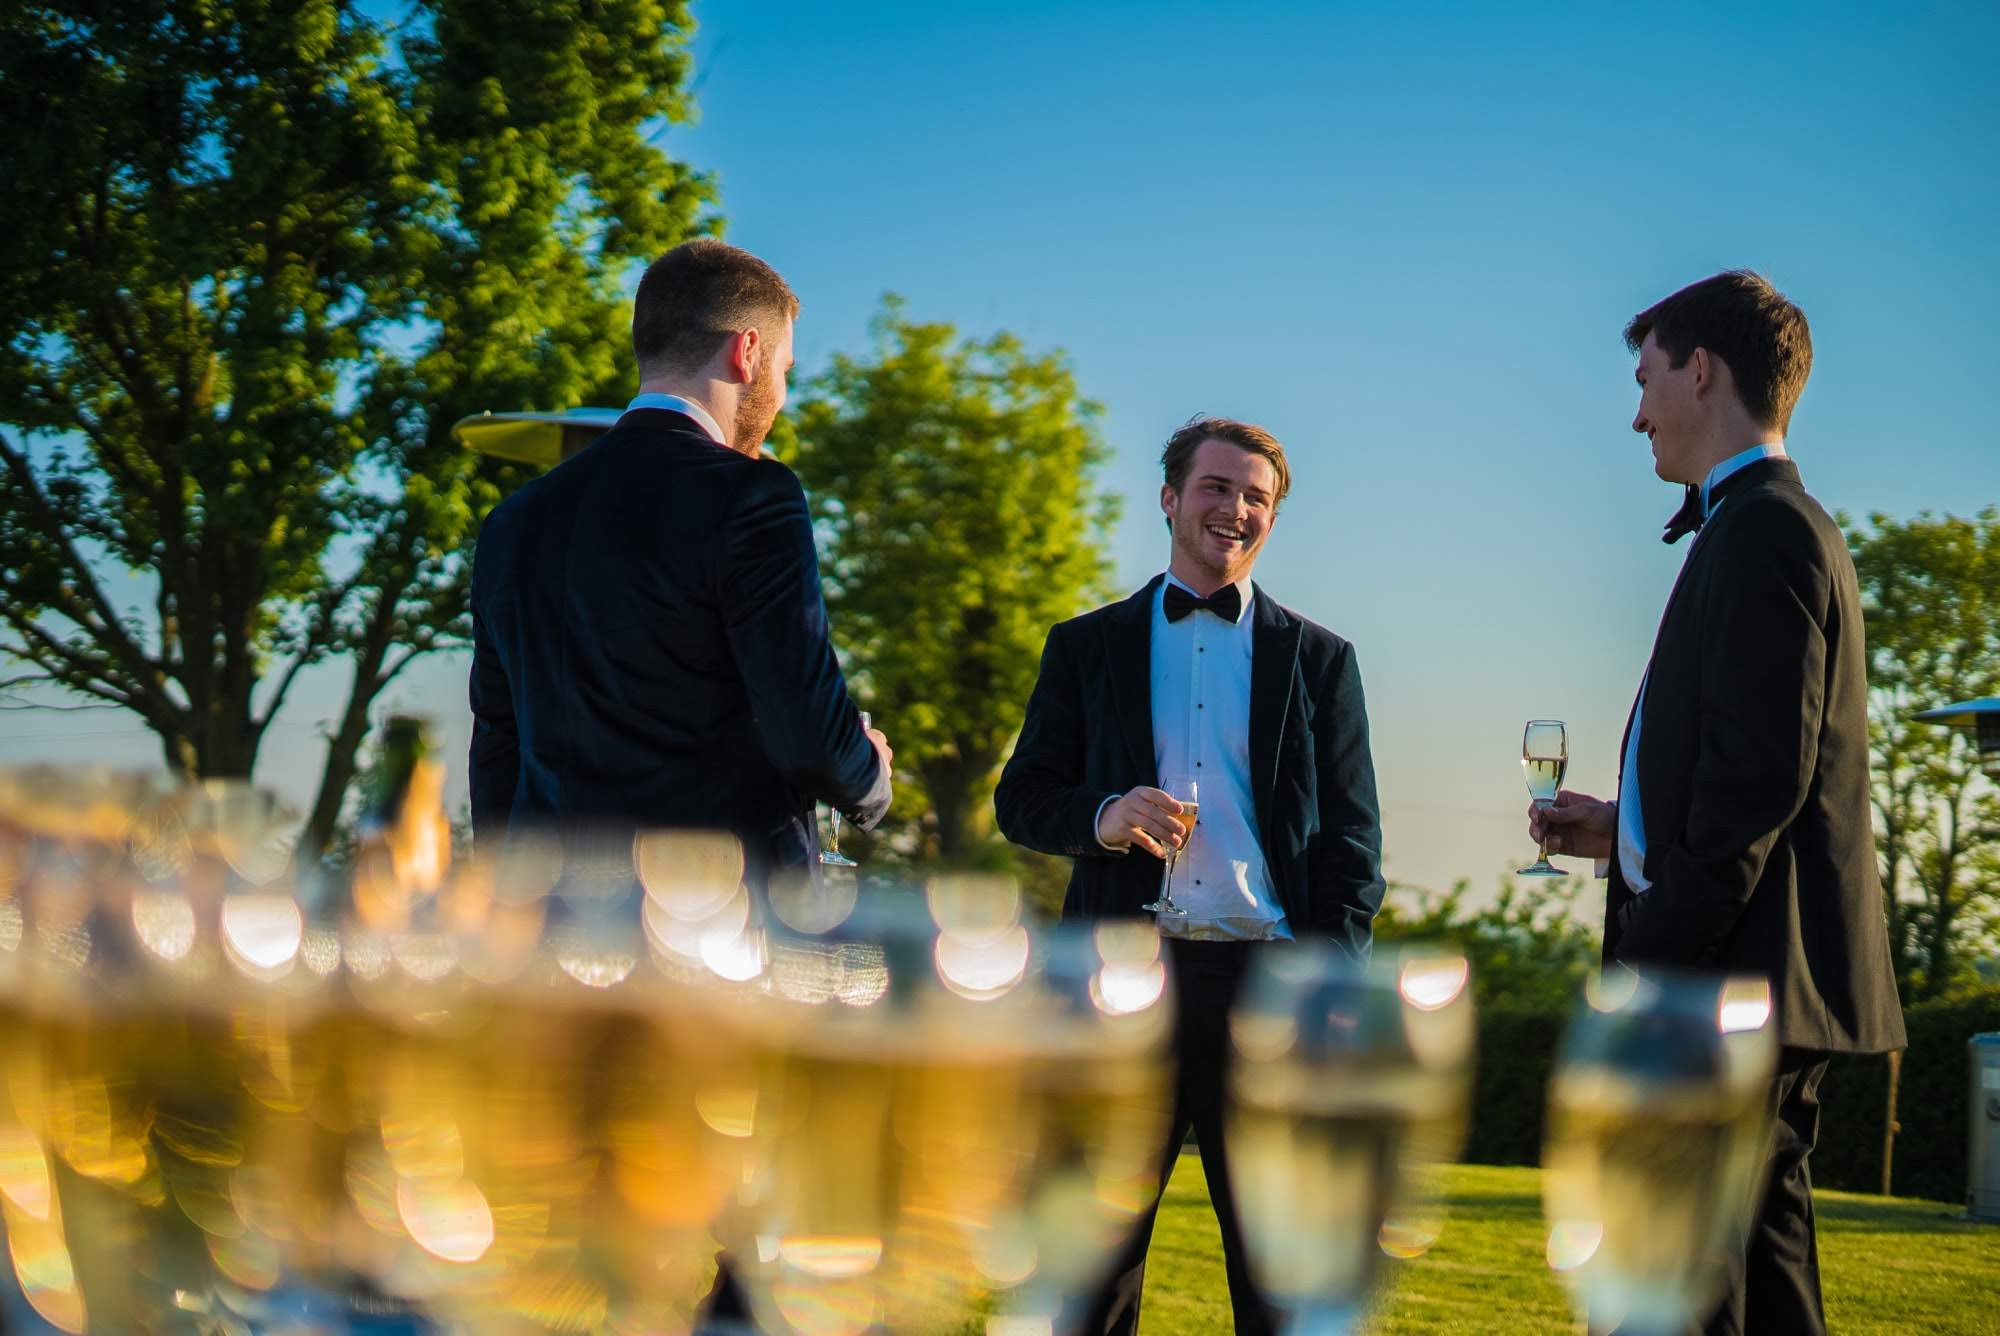 Male partygoers chatting at a drinks reception